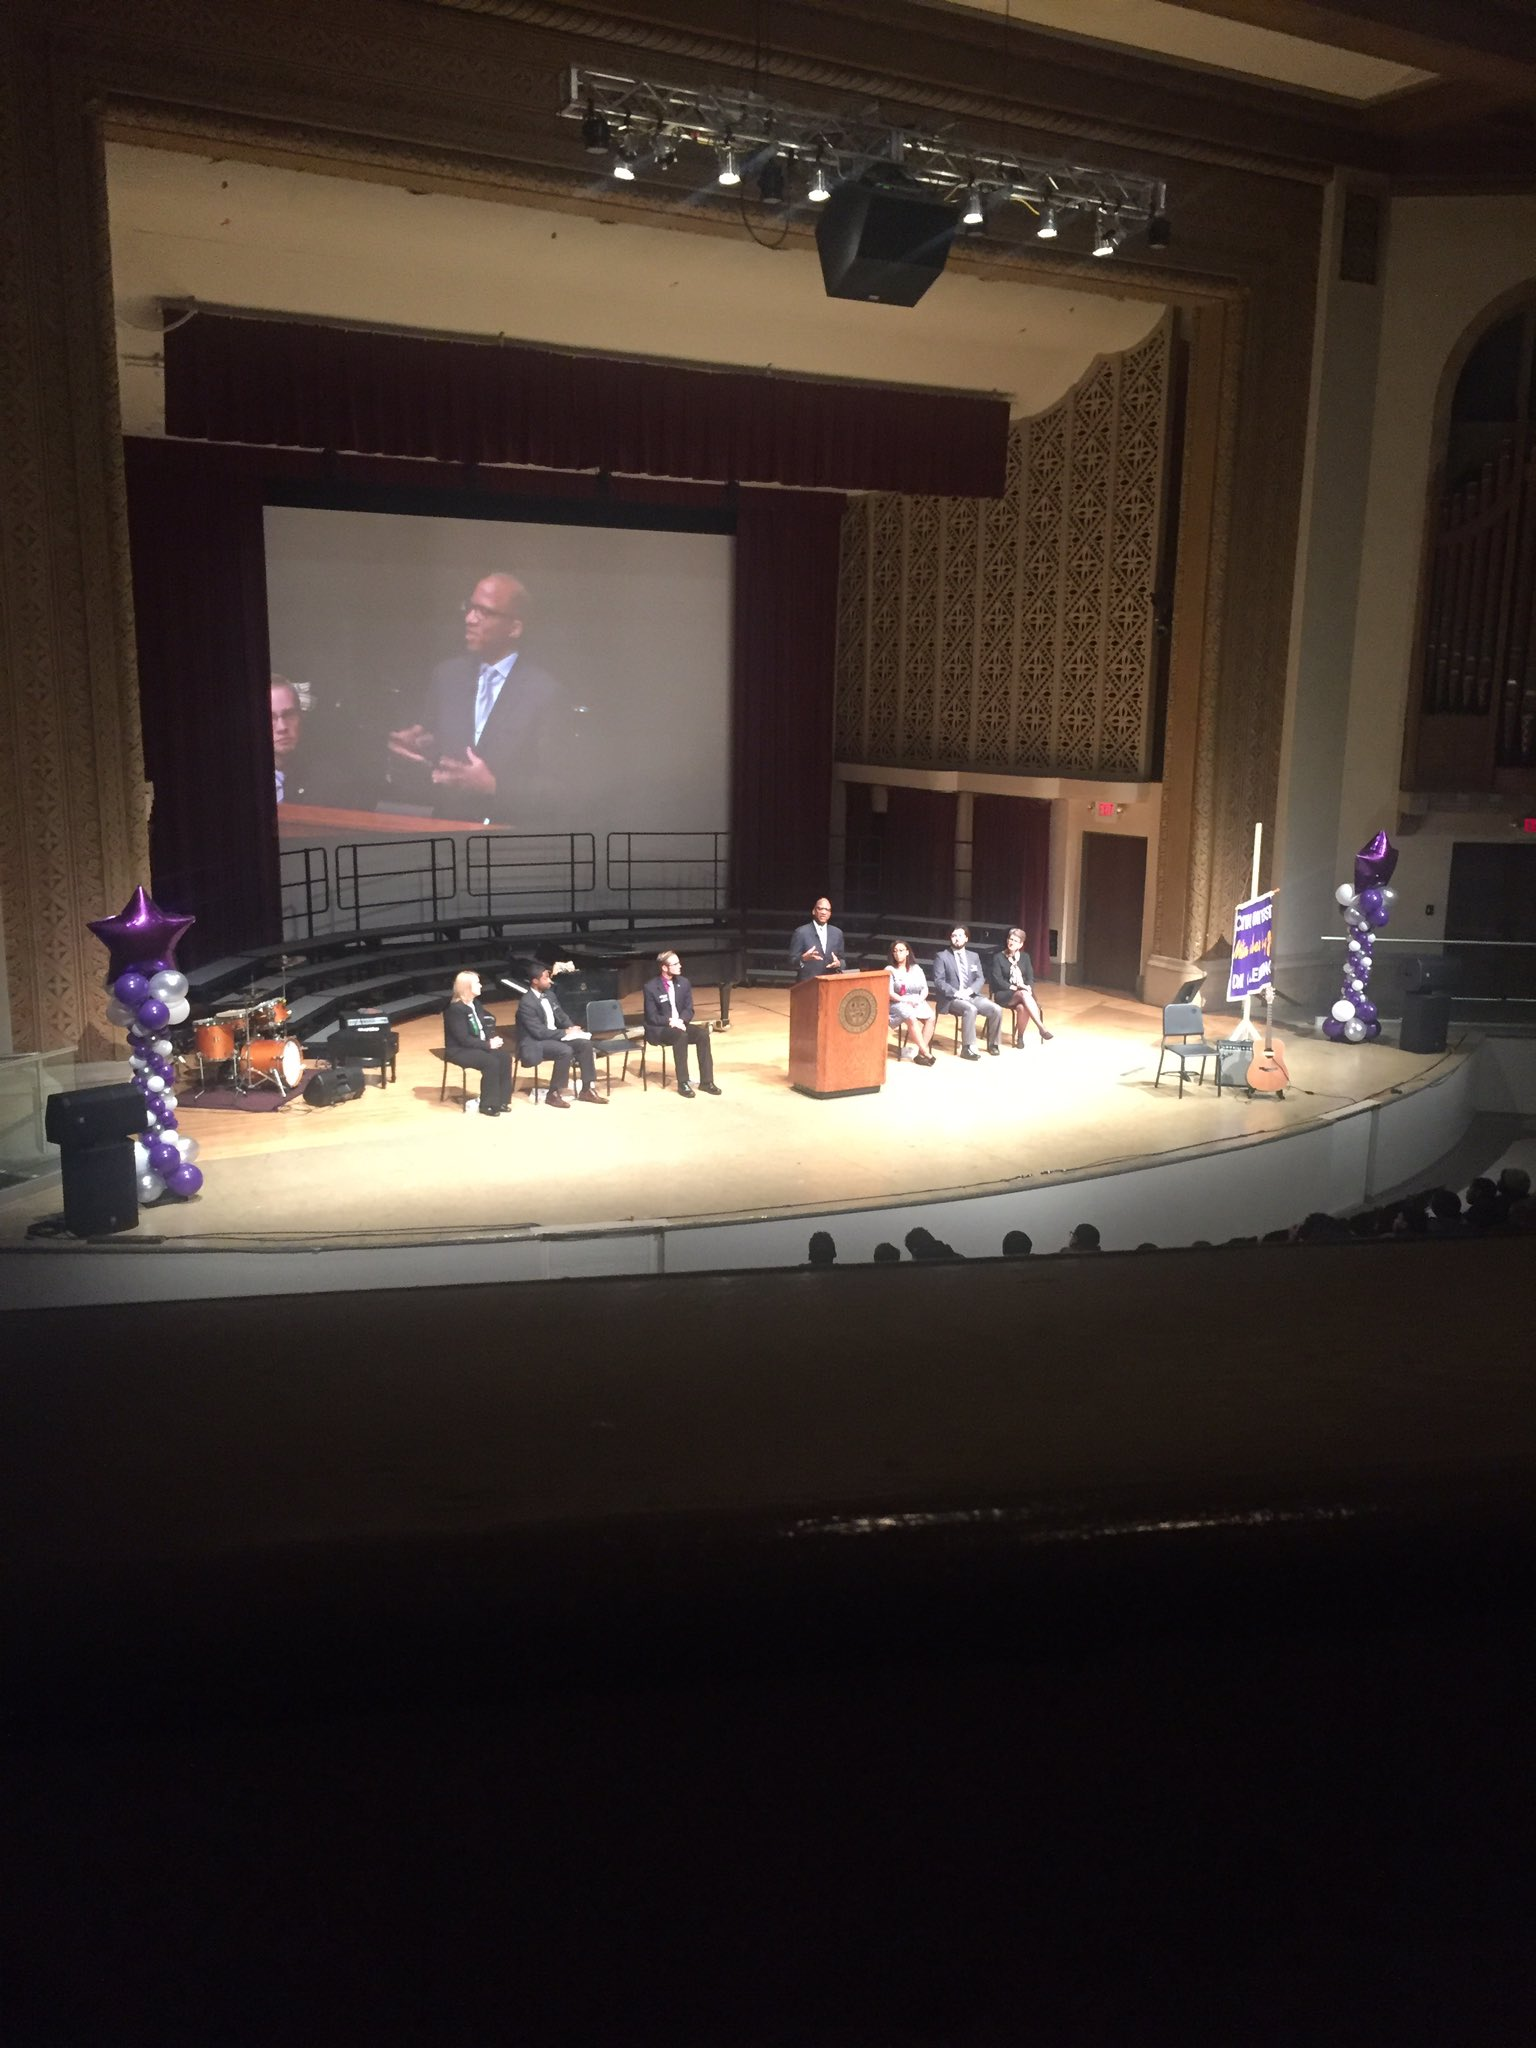 """""""A dream is a seed inside of you."""" - Wil Haygood #capfam #MLKDayOfLearning https://t.co/bxUKvFNgYQ"""